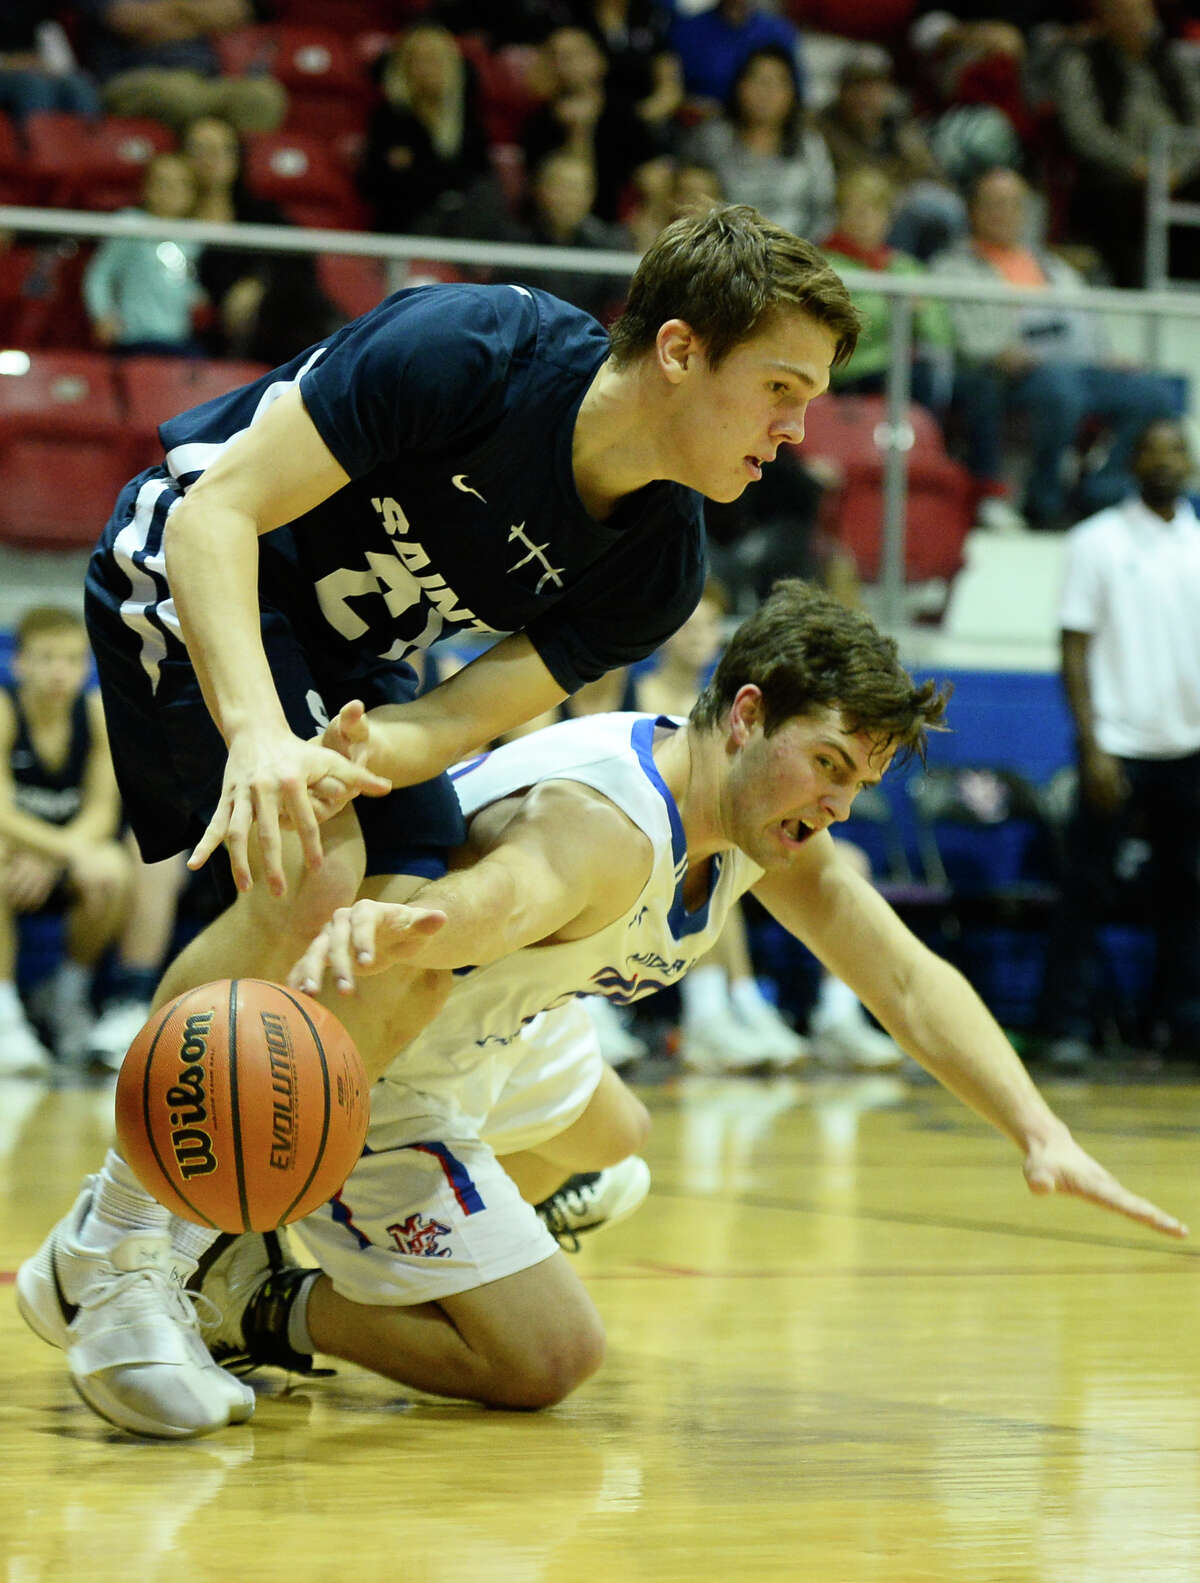 Midland Christian's Silas Crews (20) goes after the ball against Fort Worth All Saints Matt Albritton (21) on Feb. 6, 2018, at McGraw Events Center. James Durbin/Reporter-Telegram